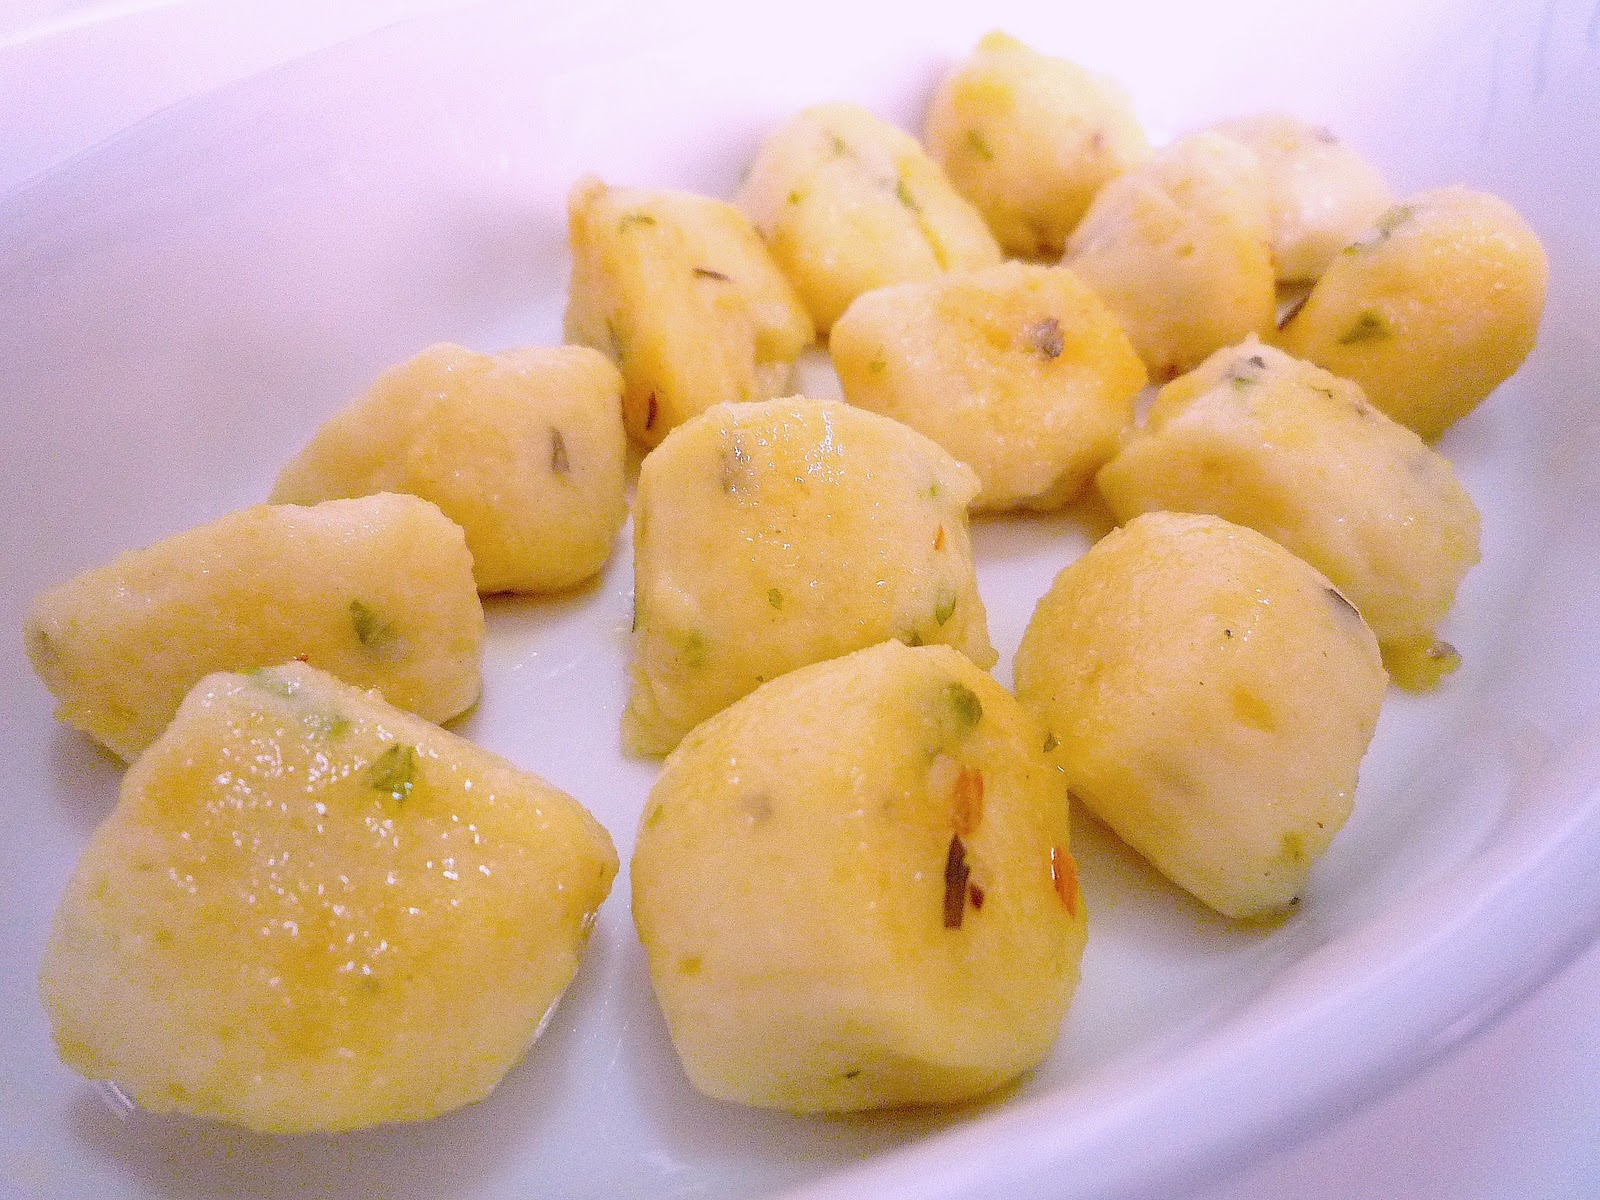 Food Wanderings in Asia: Parisienne Gnocchi